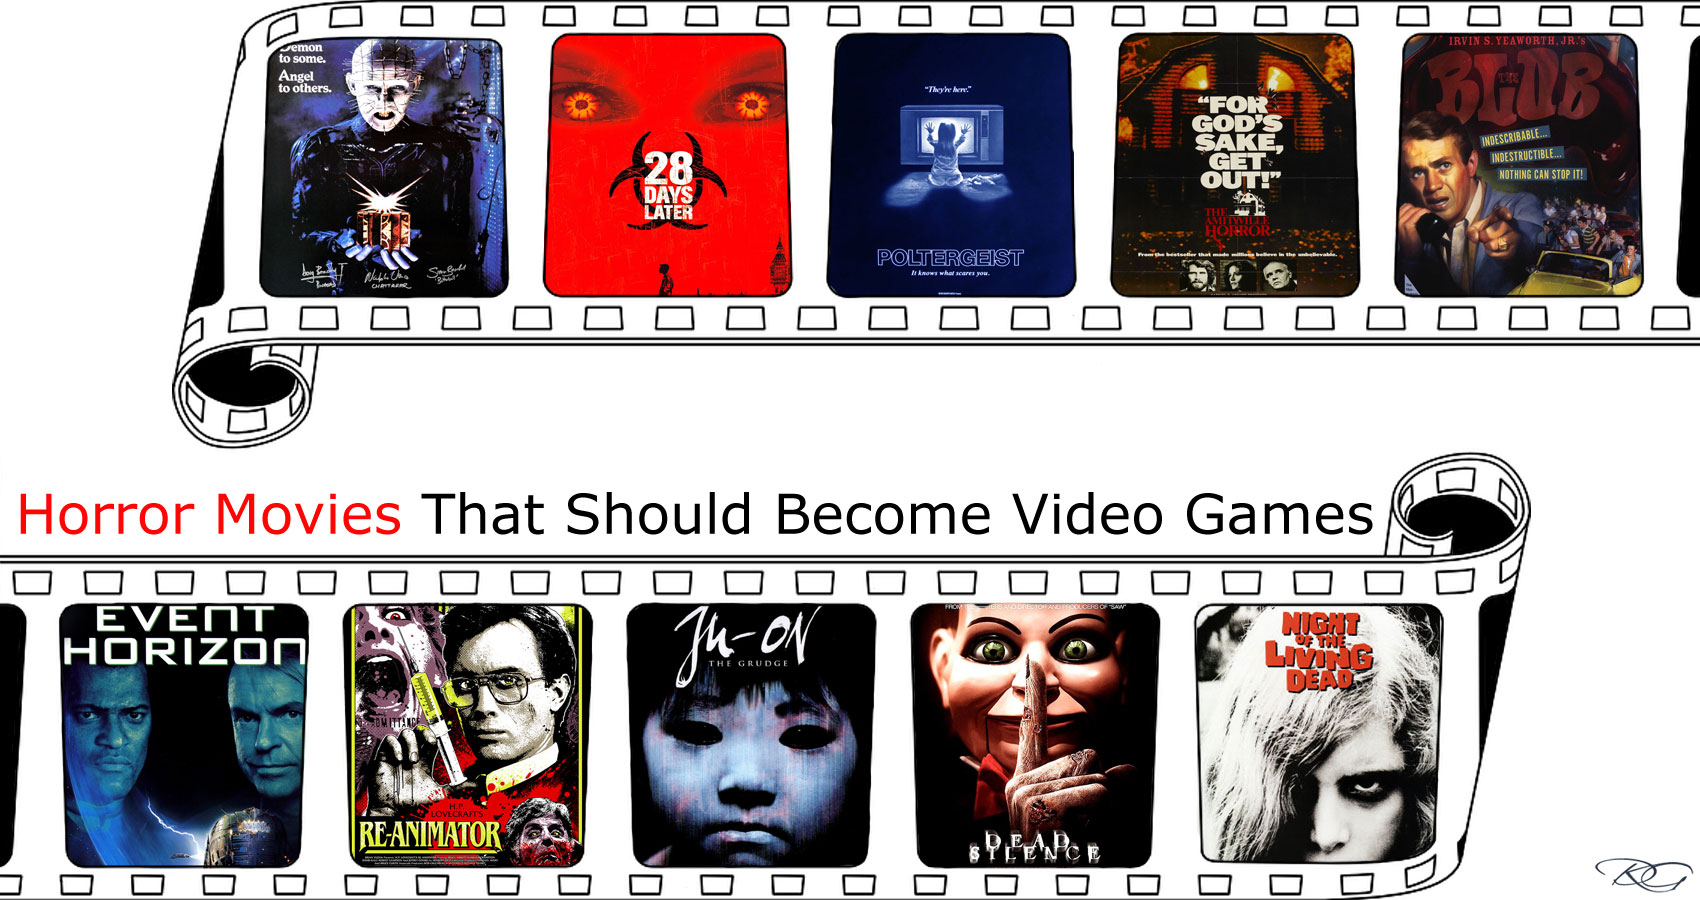 Horror Movies That Should Become Video Games written by Daniel S. Liuzzi at Spillwords.com